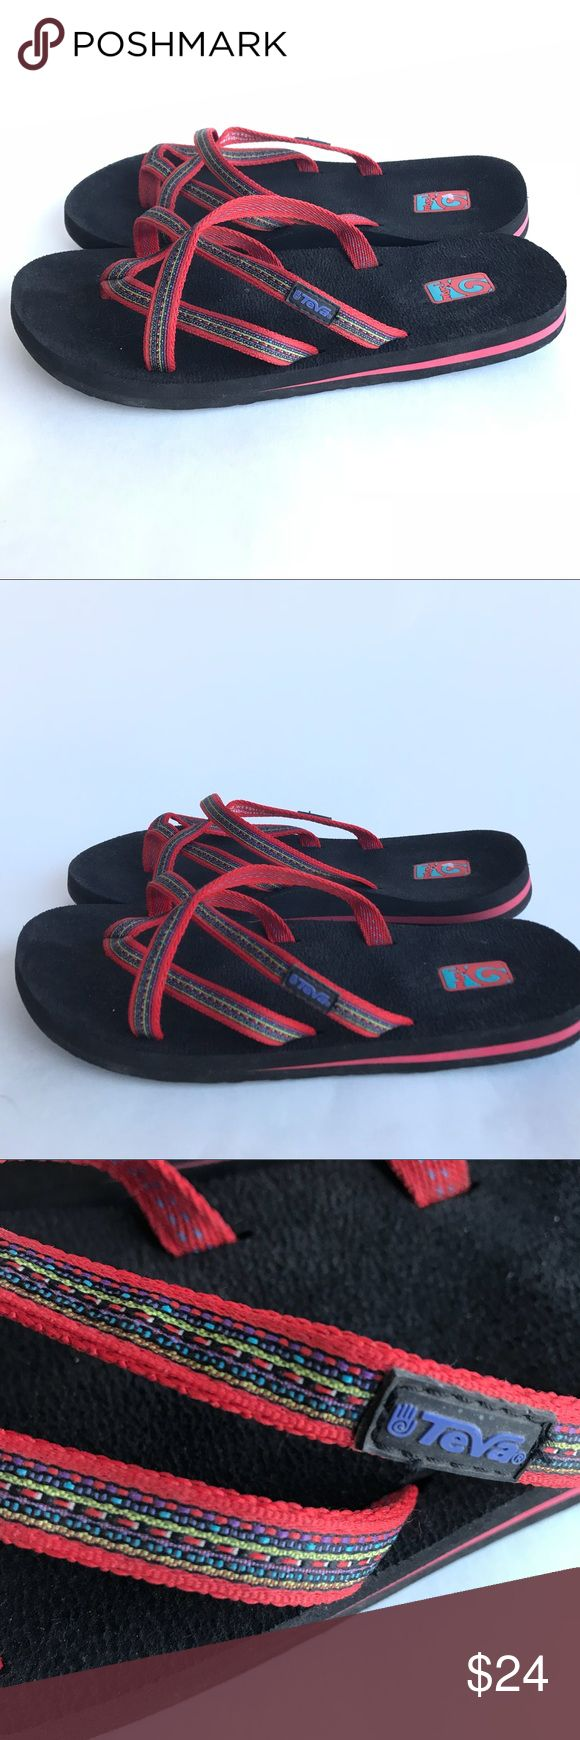 Teva Flip Flops Size 9W Mush Red   Thong Sandals Teva Flip Flops Size 9W Mush Red Toe Thong Sandals Strappy Womens Slip Ons Teva Shoes Sandals